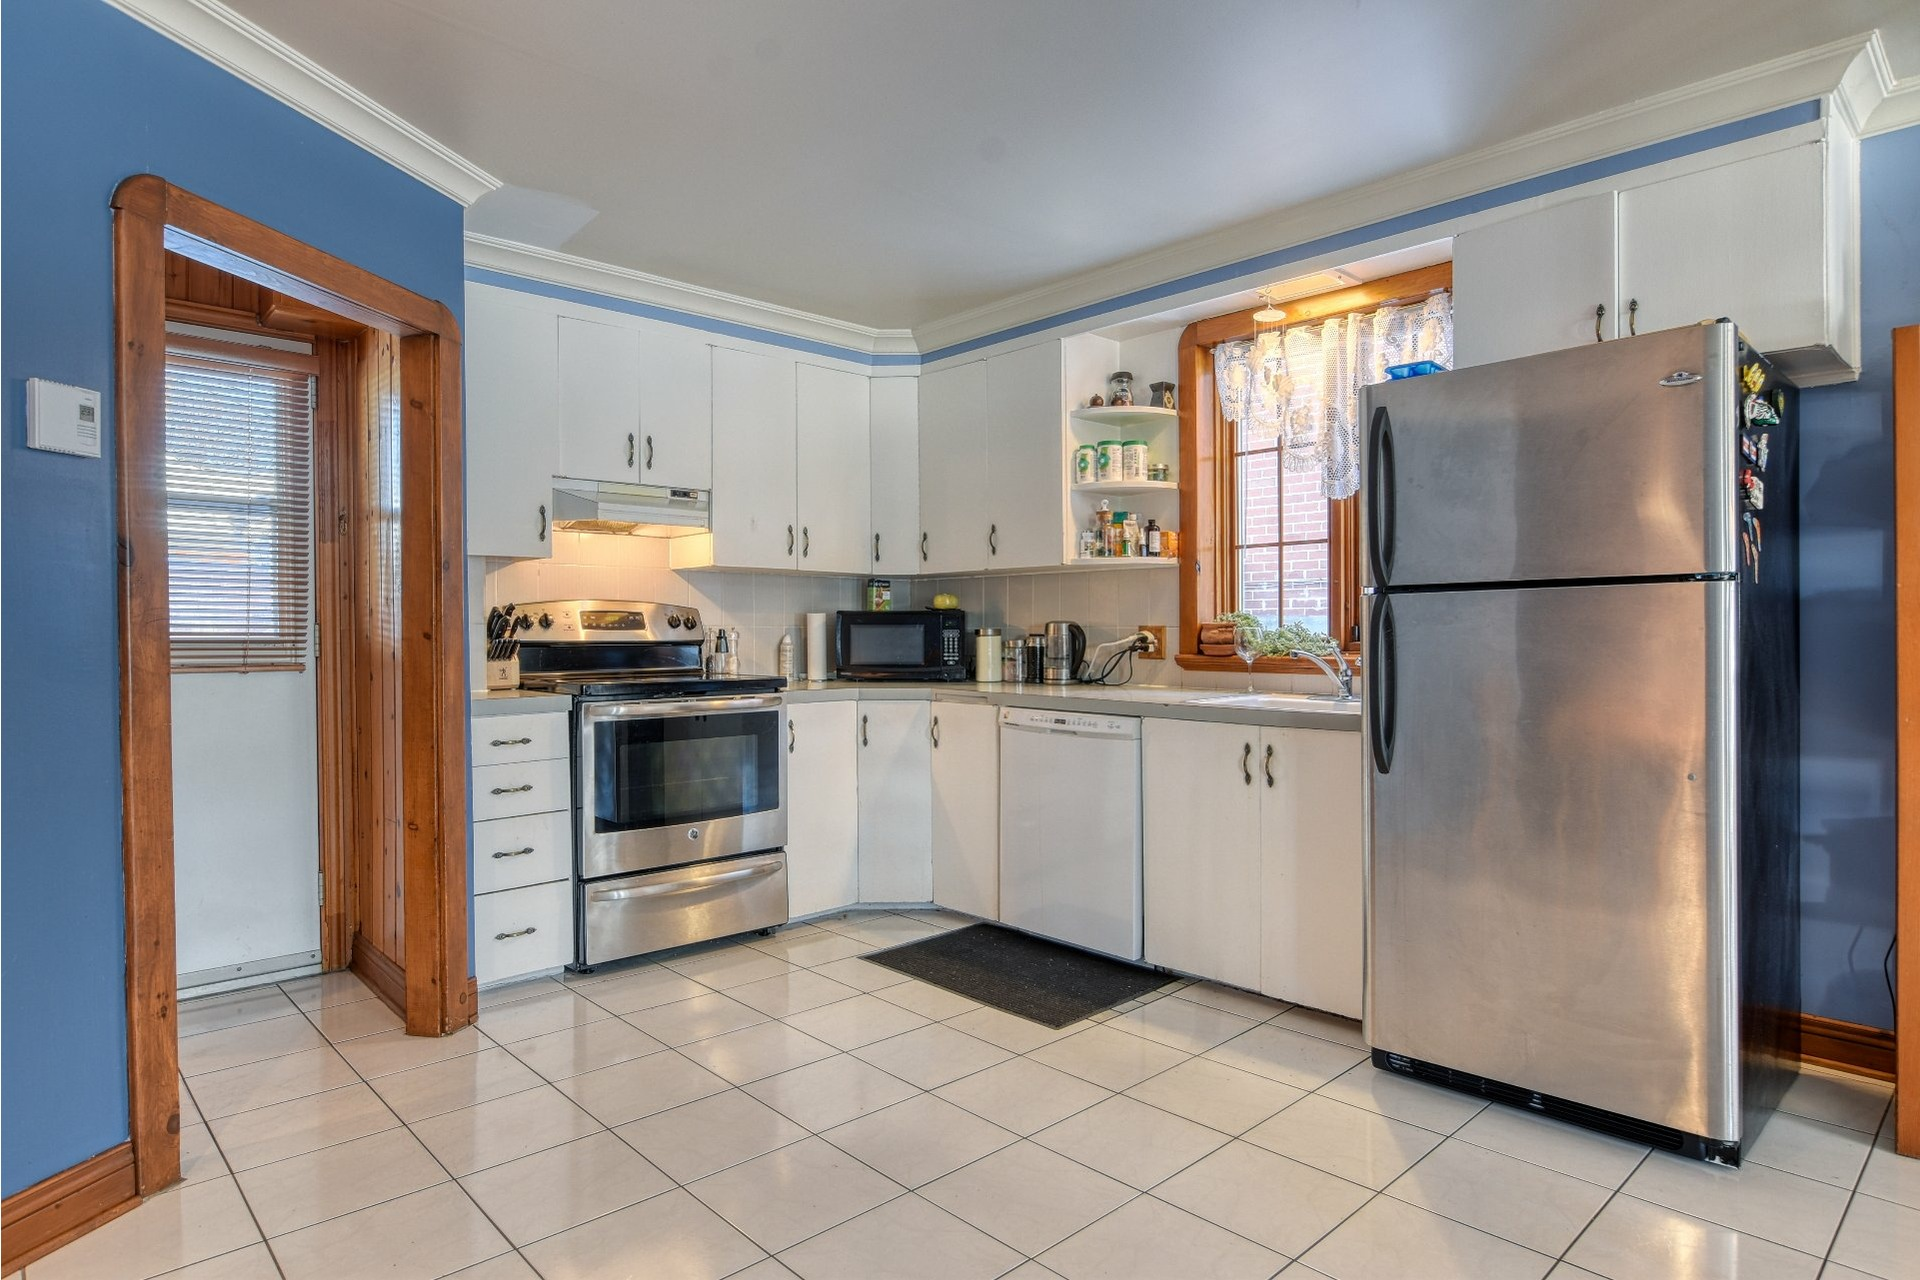 image 5 - House For sale Saint-Laurent Montréal  - 10 rooms